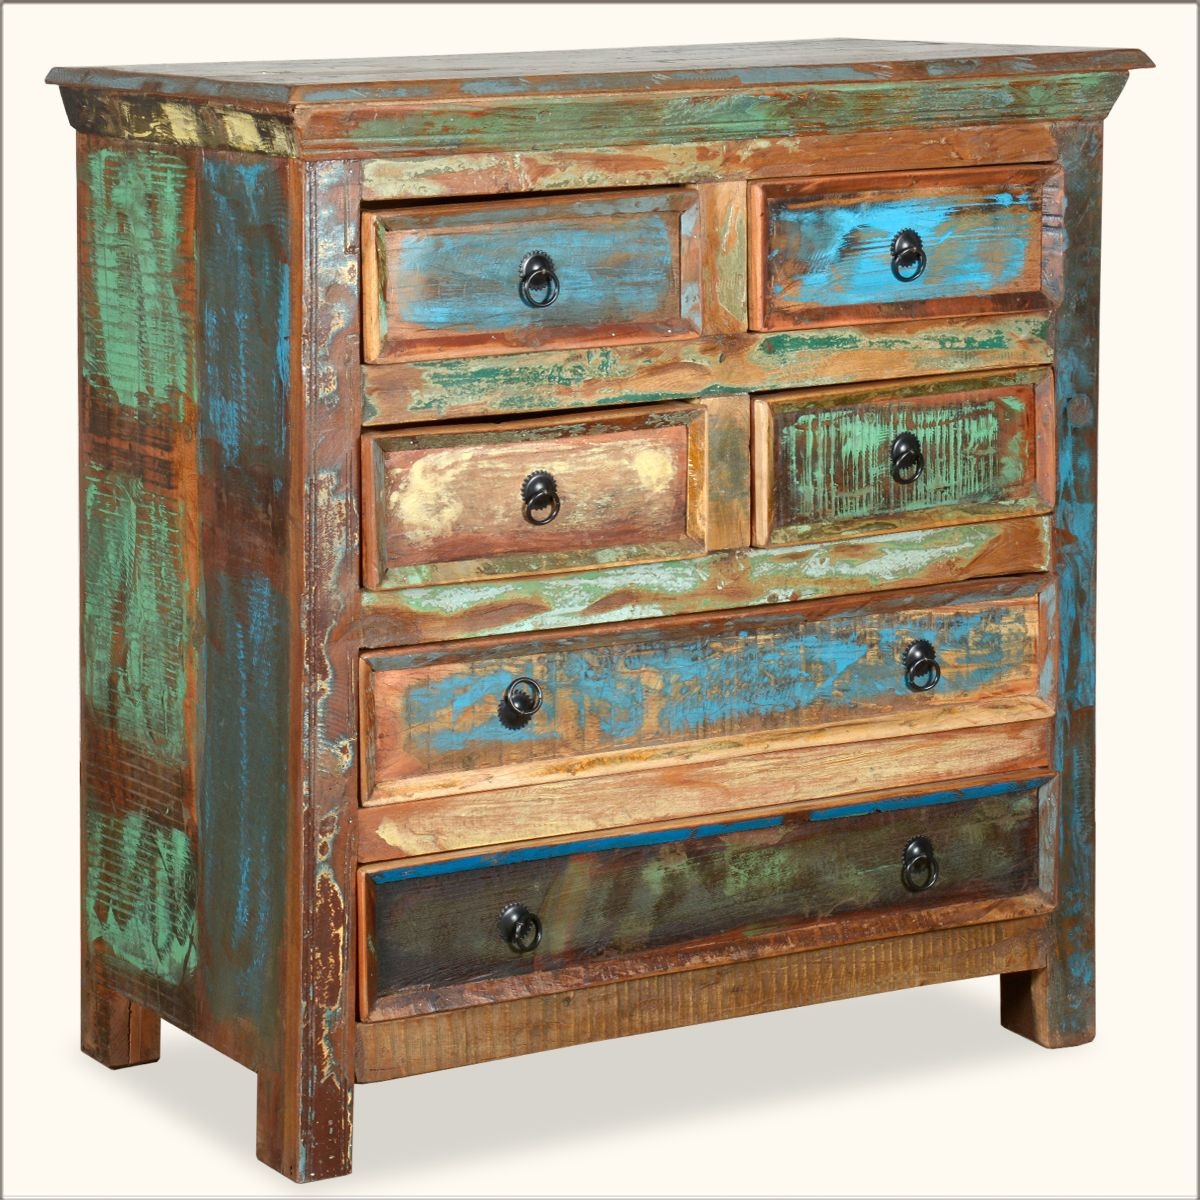 Appalachian Rustic Painted Old Wood 6 Drawer Bedroom